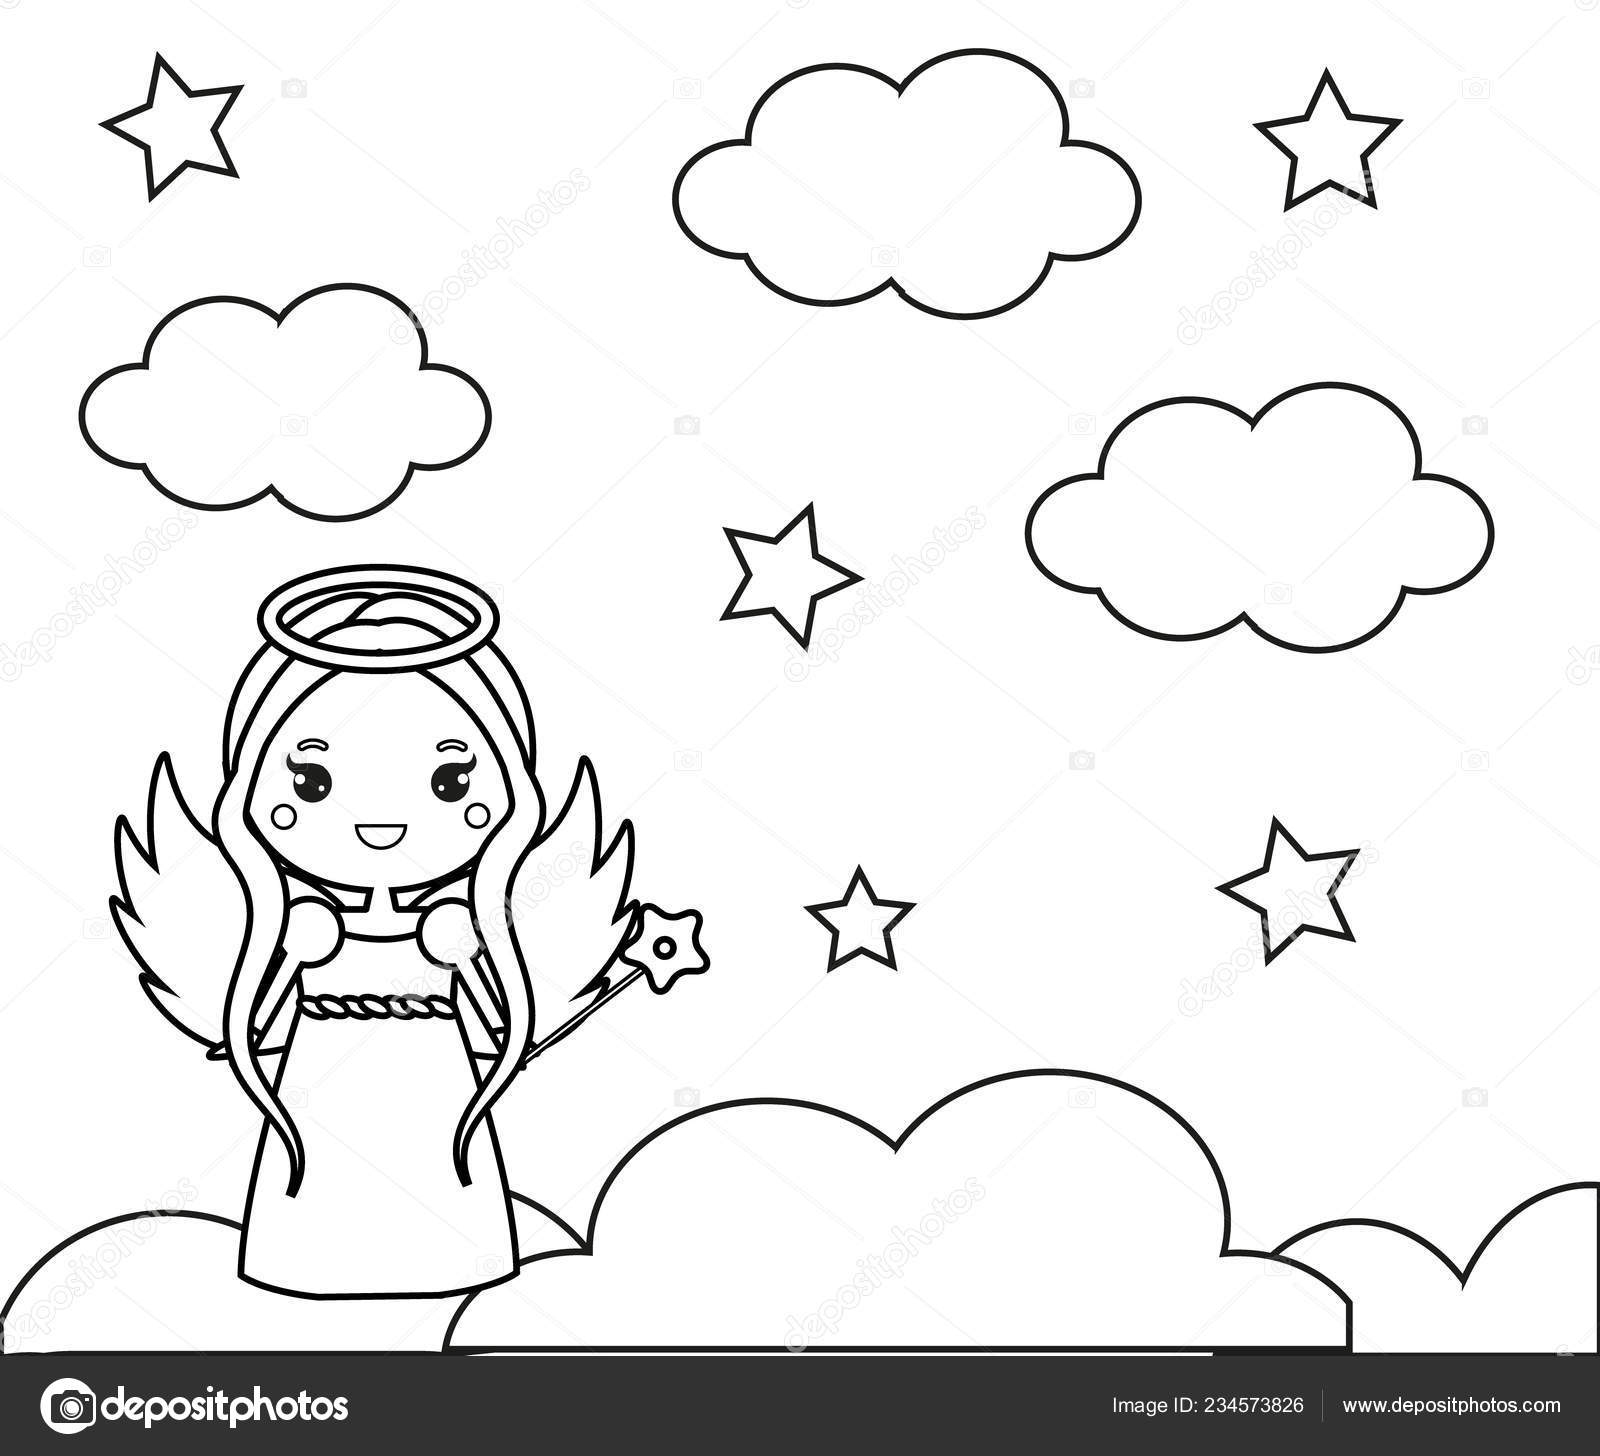 image relating to Printable Clouds referred to as Angel drawing for small children Coloring Web site Lovable Angel Clouds